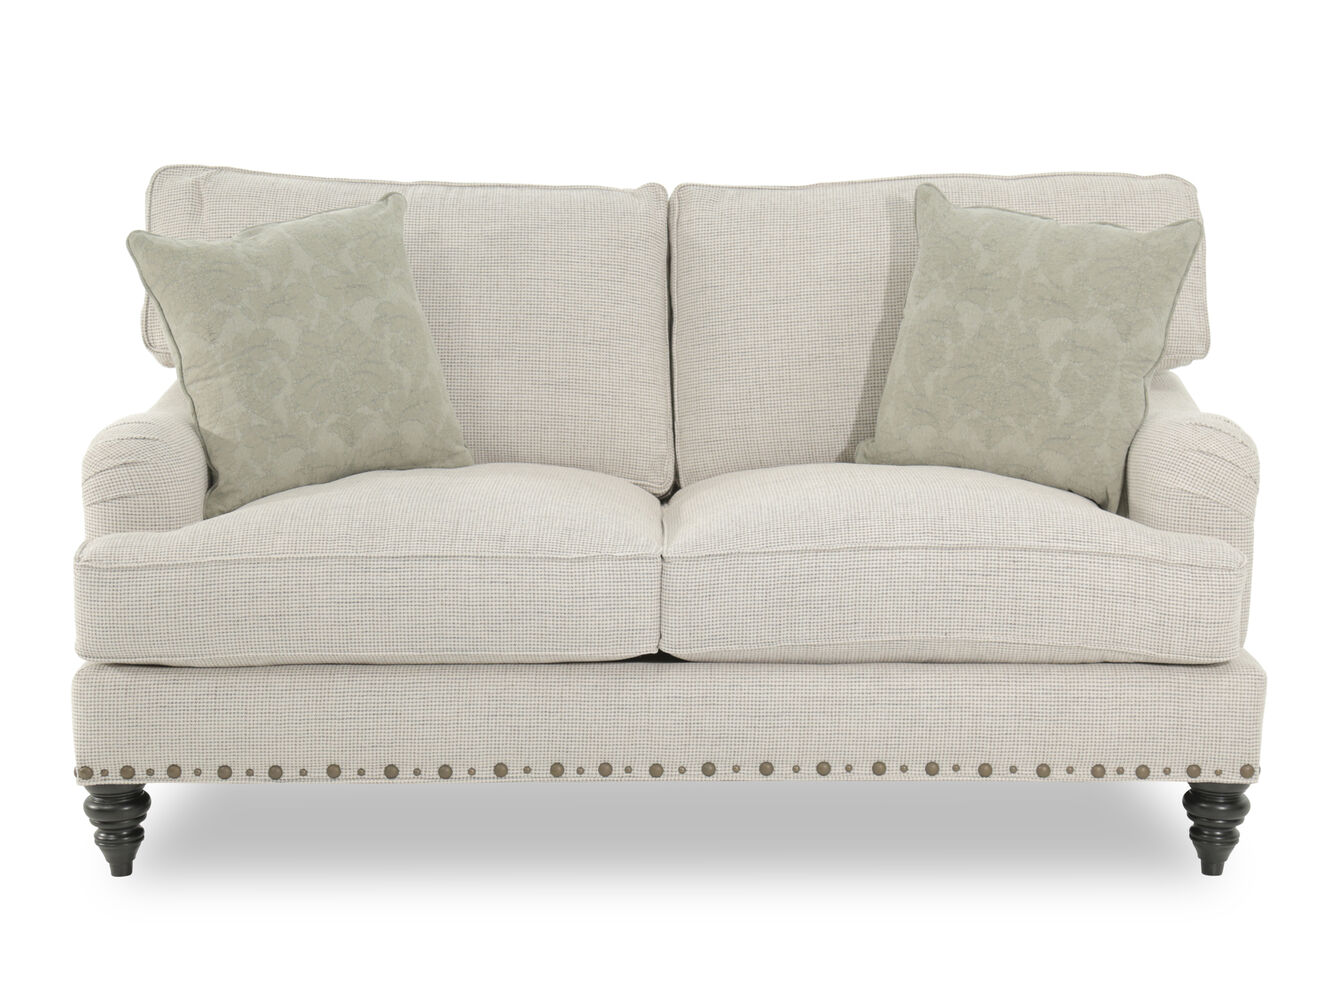 loveseat set fabric steal and poundex aron yellow sofa furniture outlet a